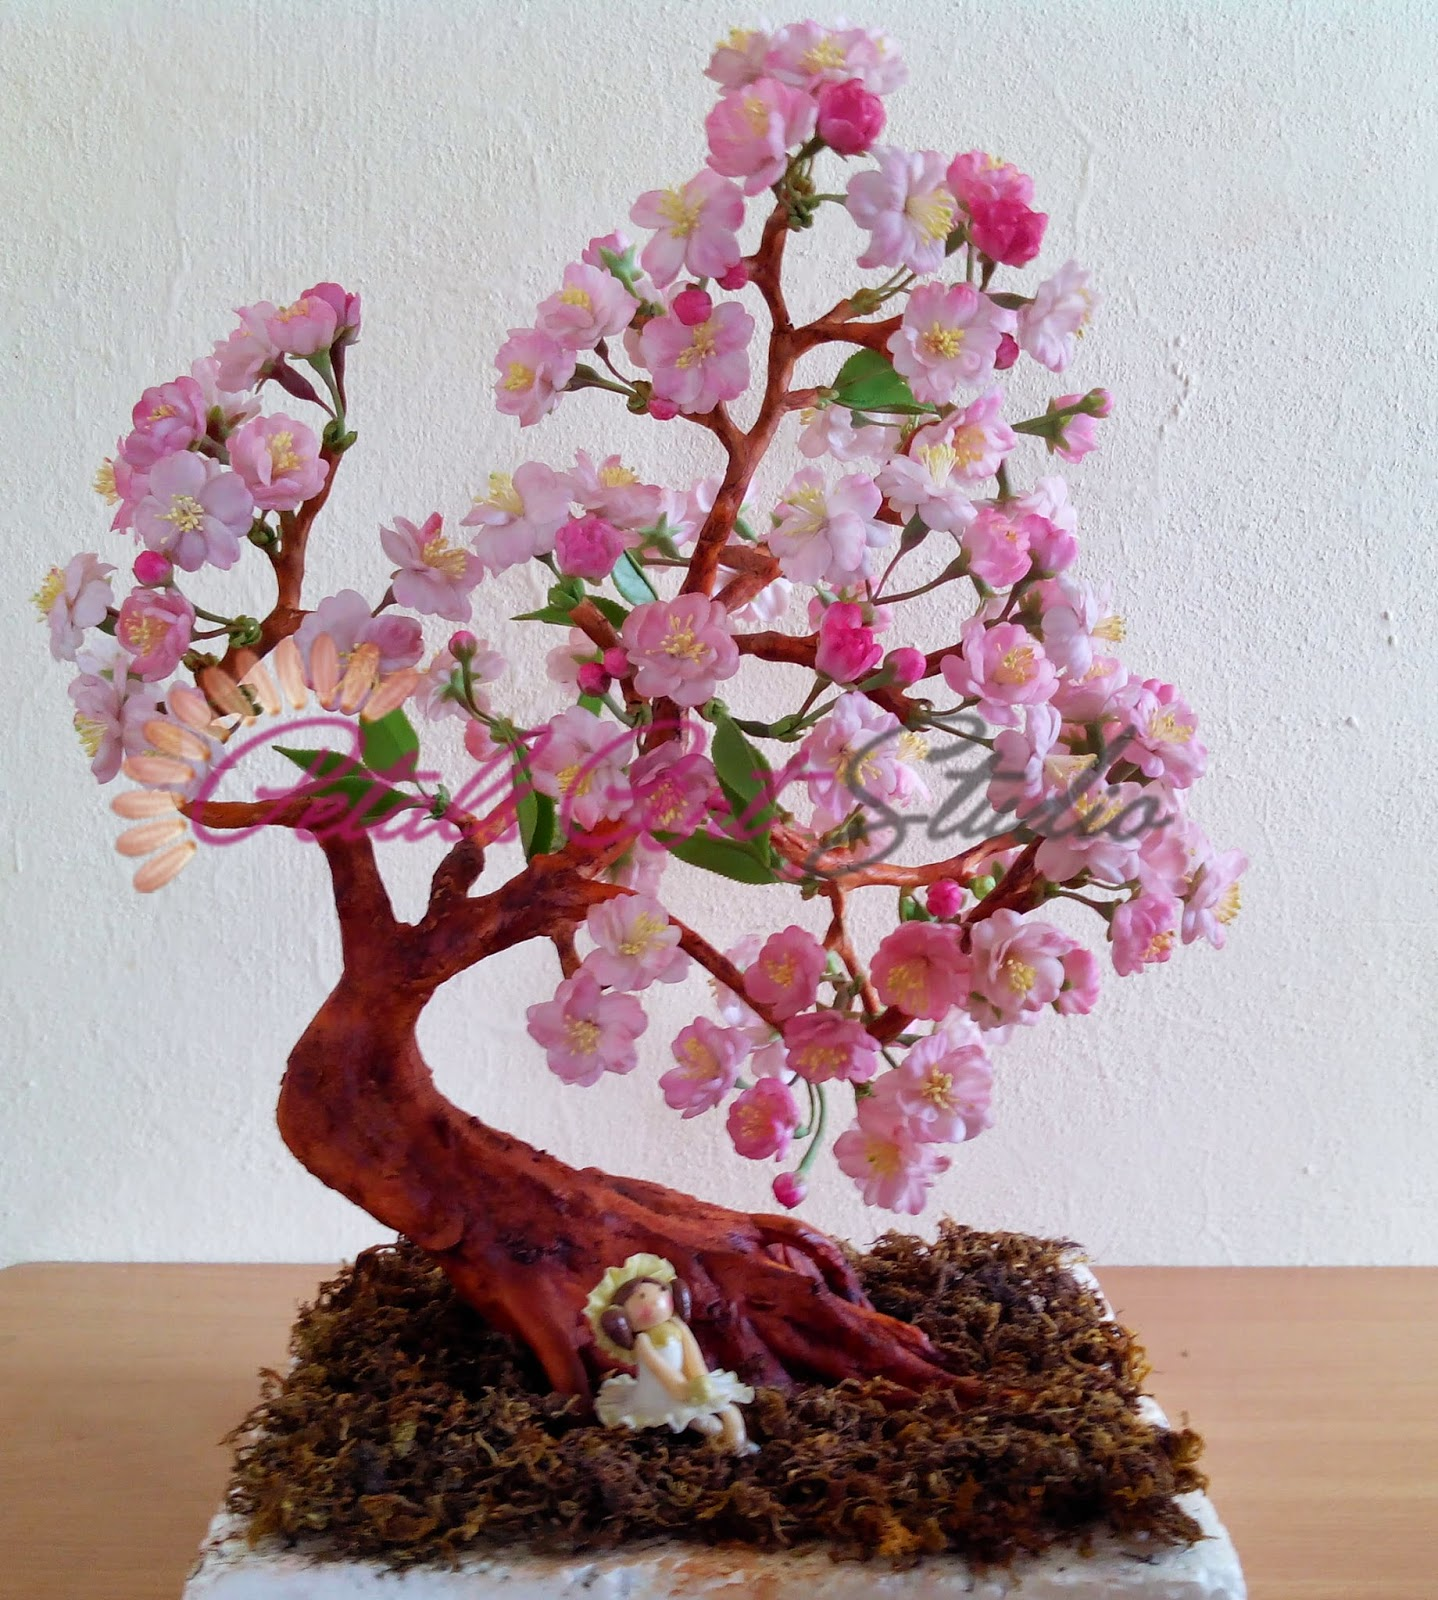 Thai Clay Sakura Bonsai Tree Petals Art Studio